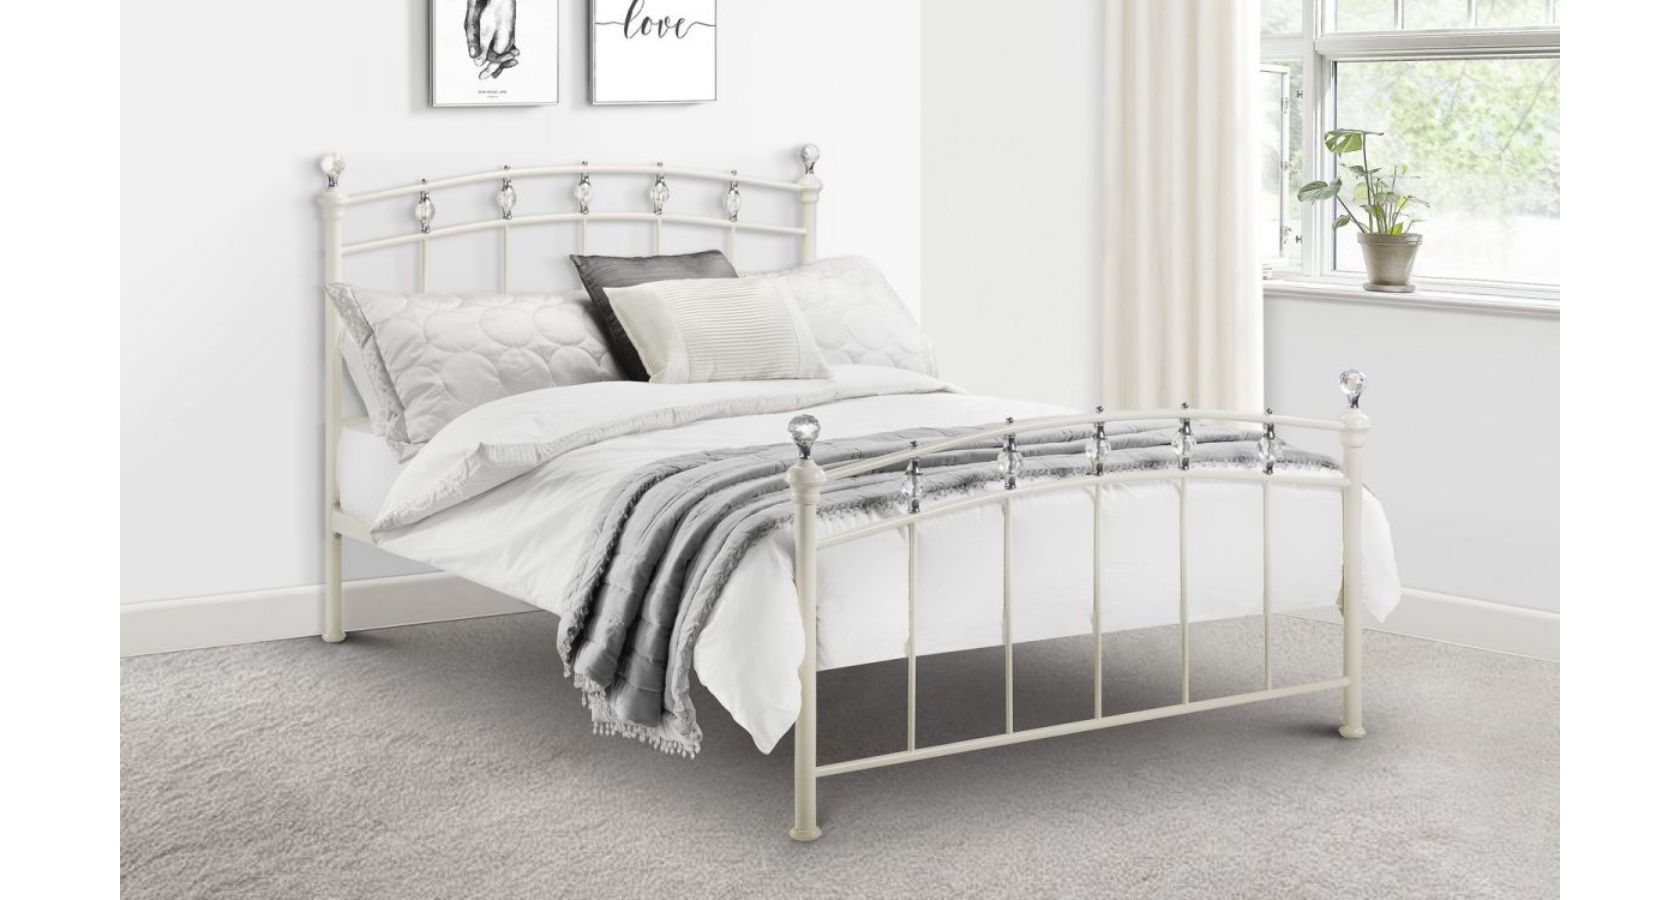 Sophie bed - stone white finish with crystal finials 150cm